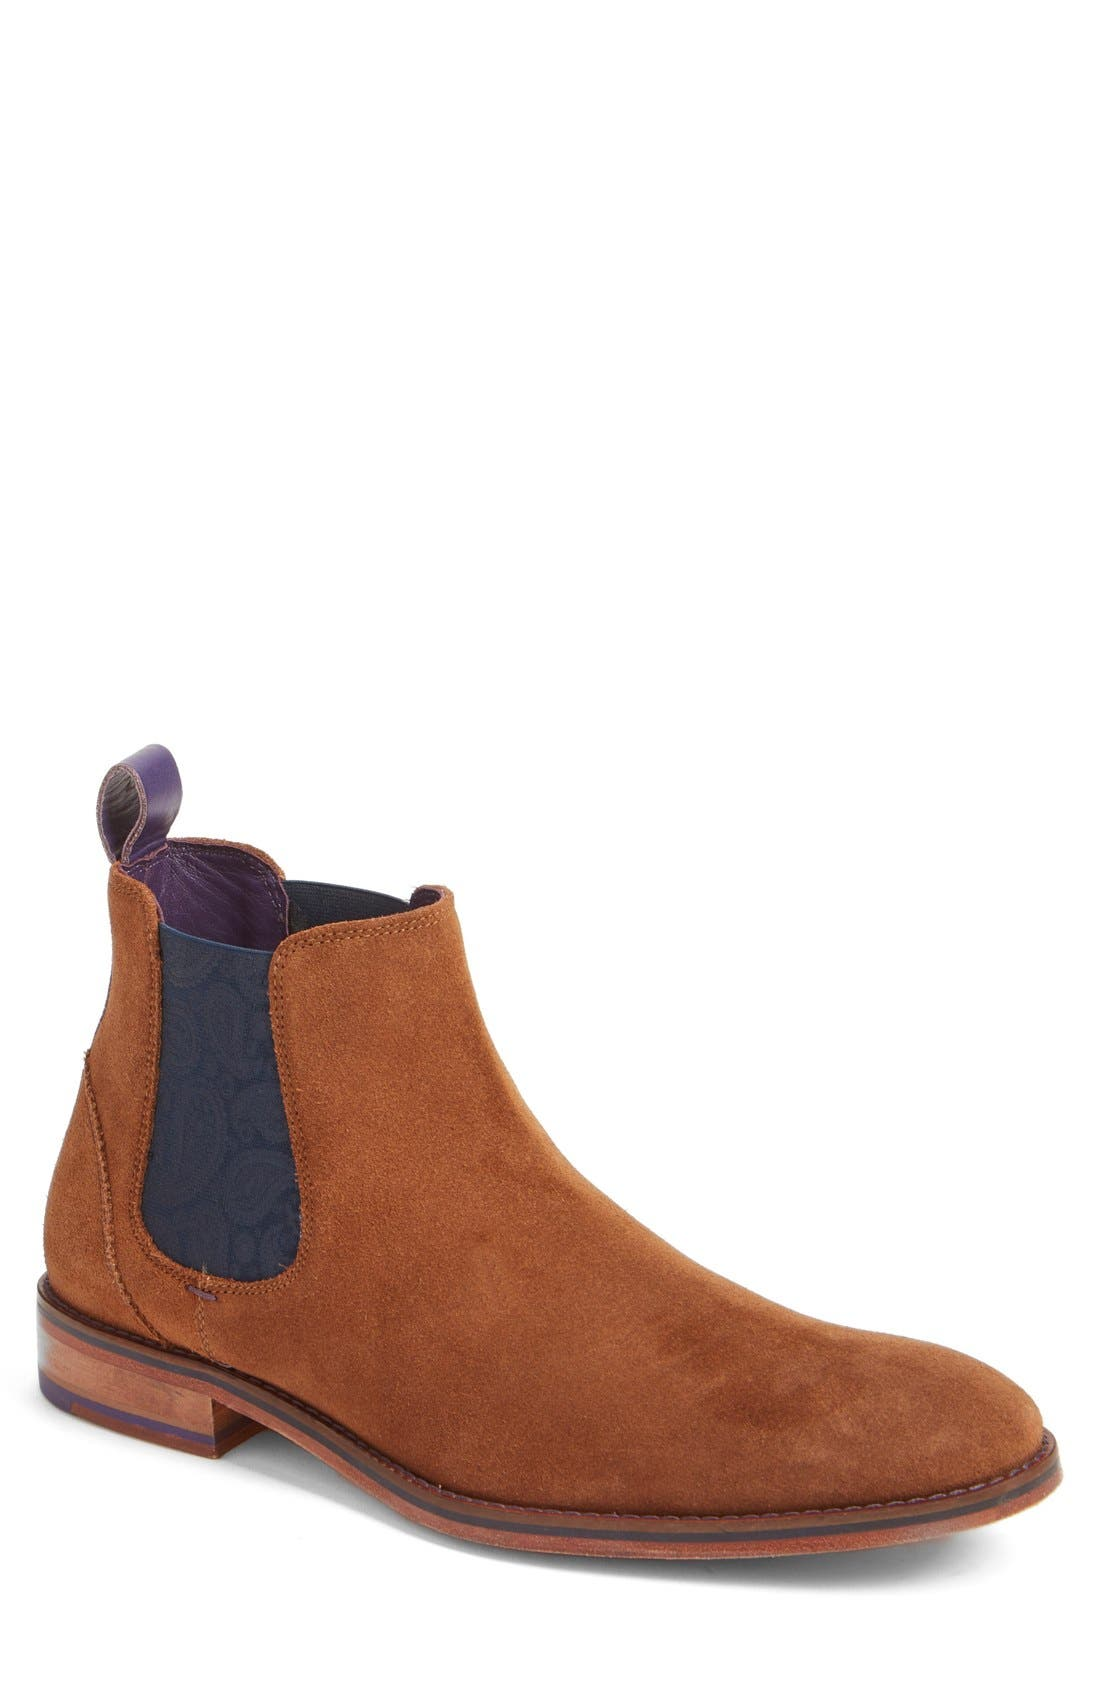 'Camroon 4' Chelsea Boot,                             Main thumbnail 5, color,